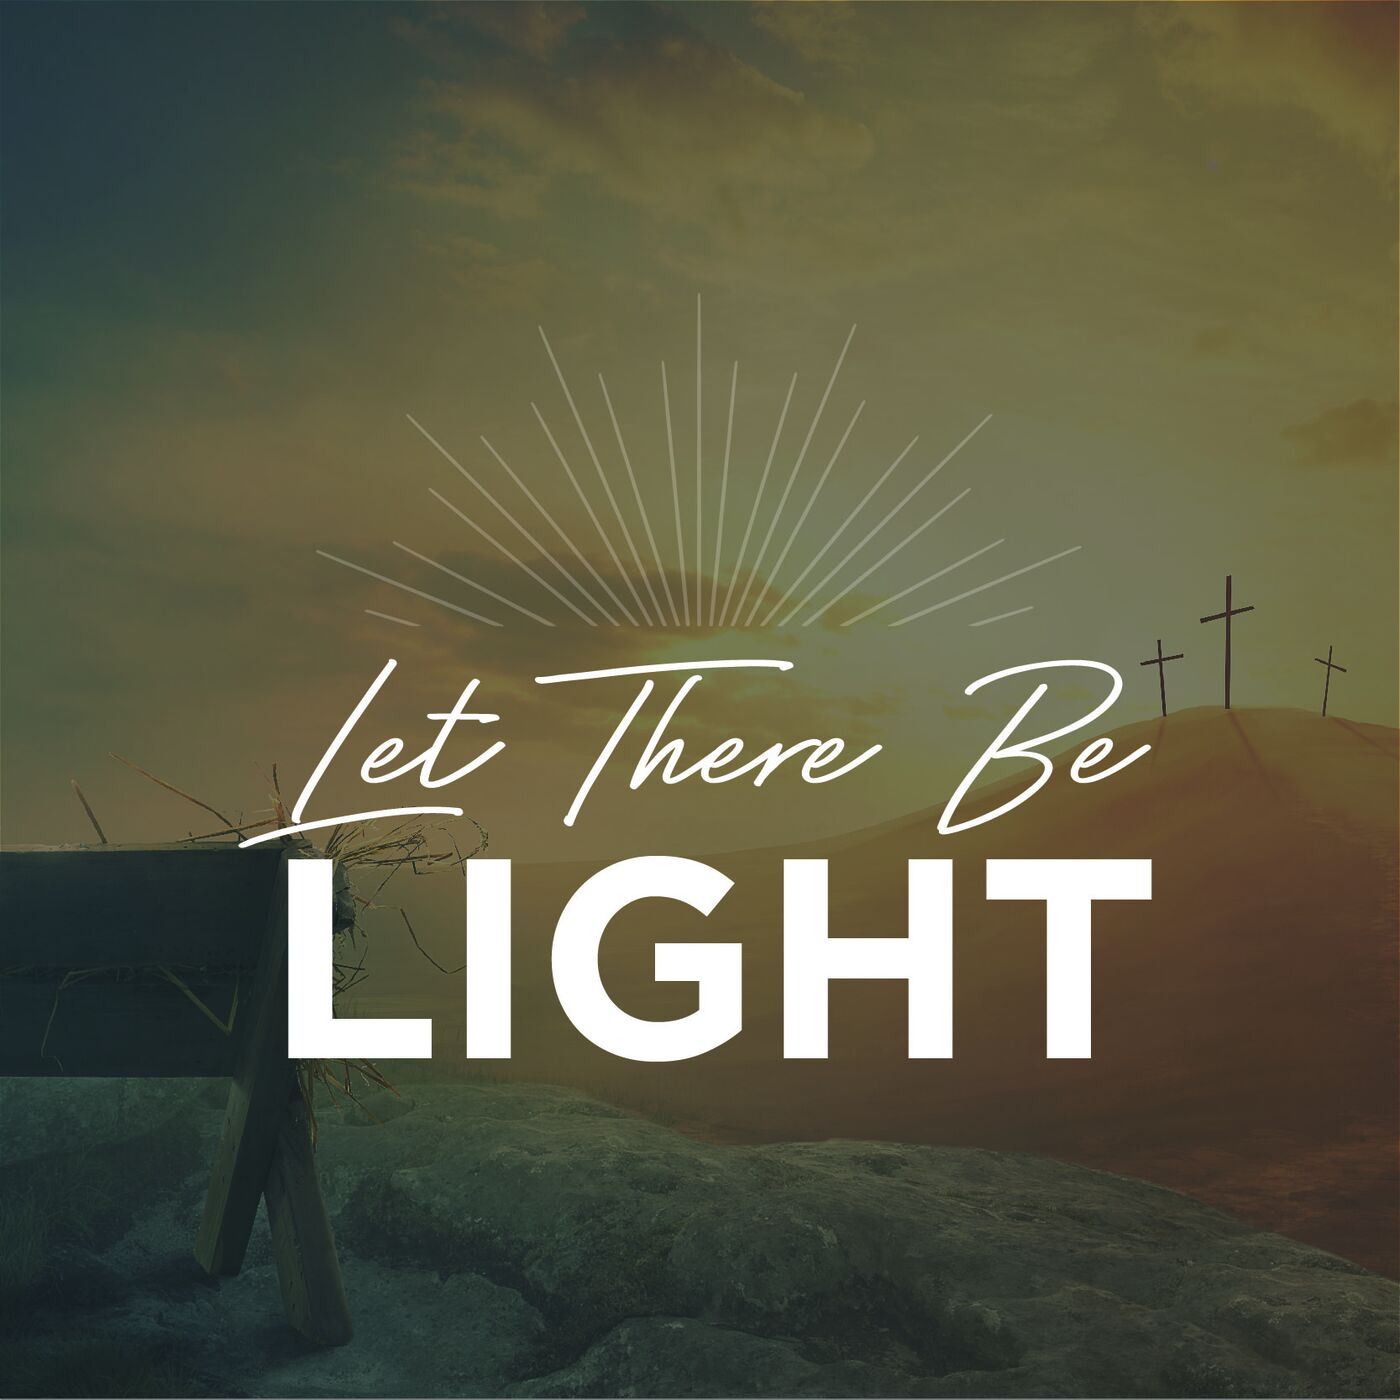 Let There Be Light     December 20, 2020